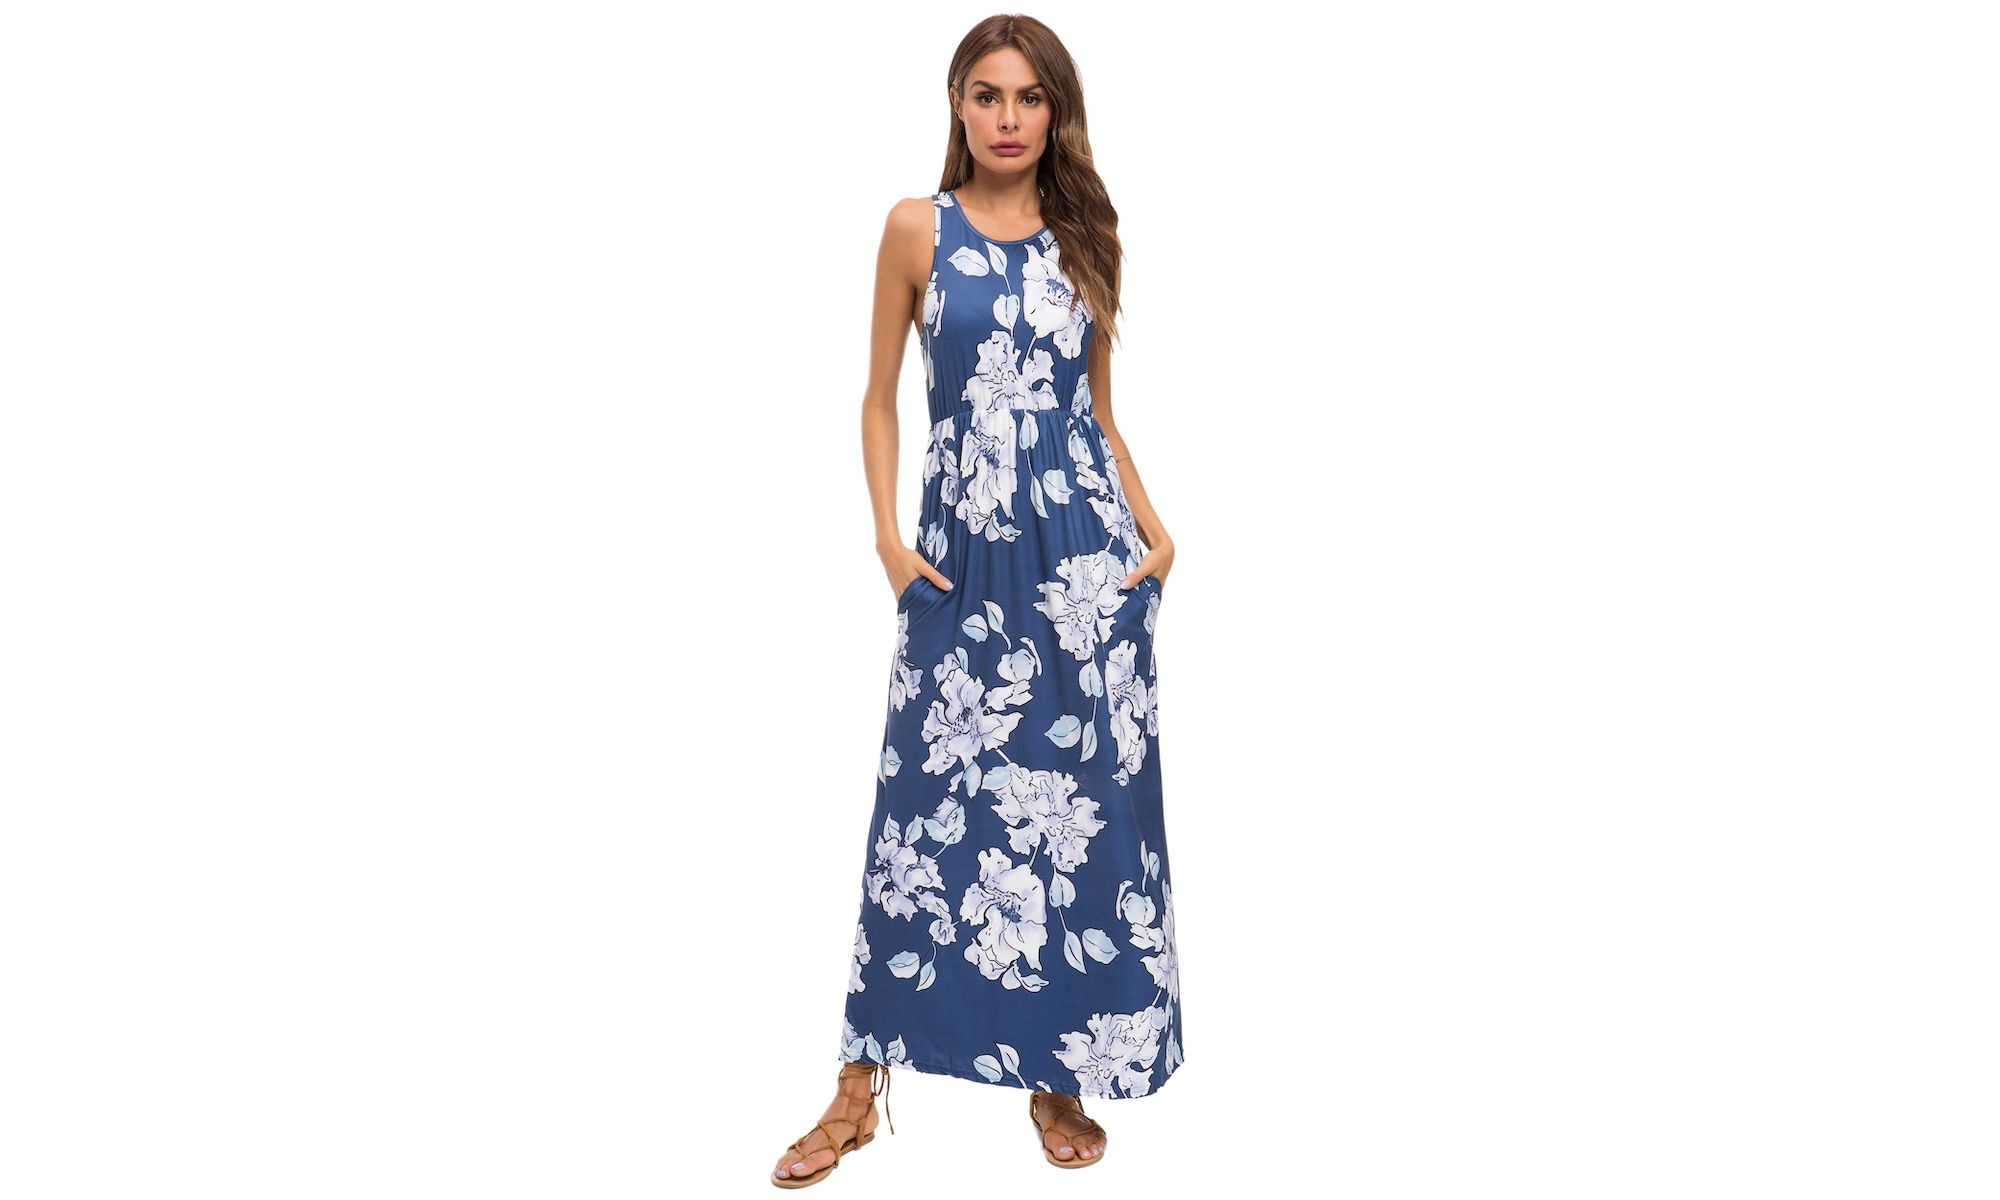 Plus And Regular Sizes Lilly Posh Women S Floral Tank Casual Swing Dress With Pockets Ad Posh A Swing Dress With Pockets Swing Dress Spring Sweater Outfits [ 1200 x 2000 Pixel ]